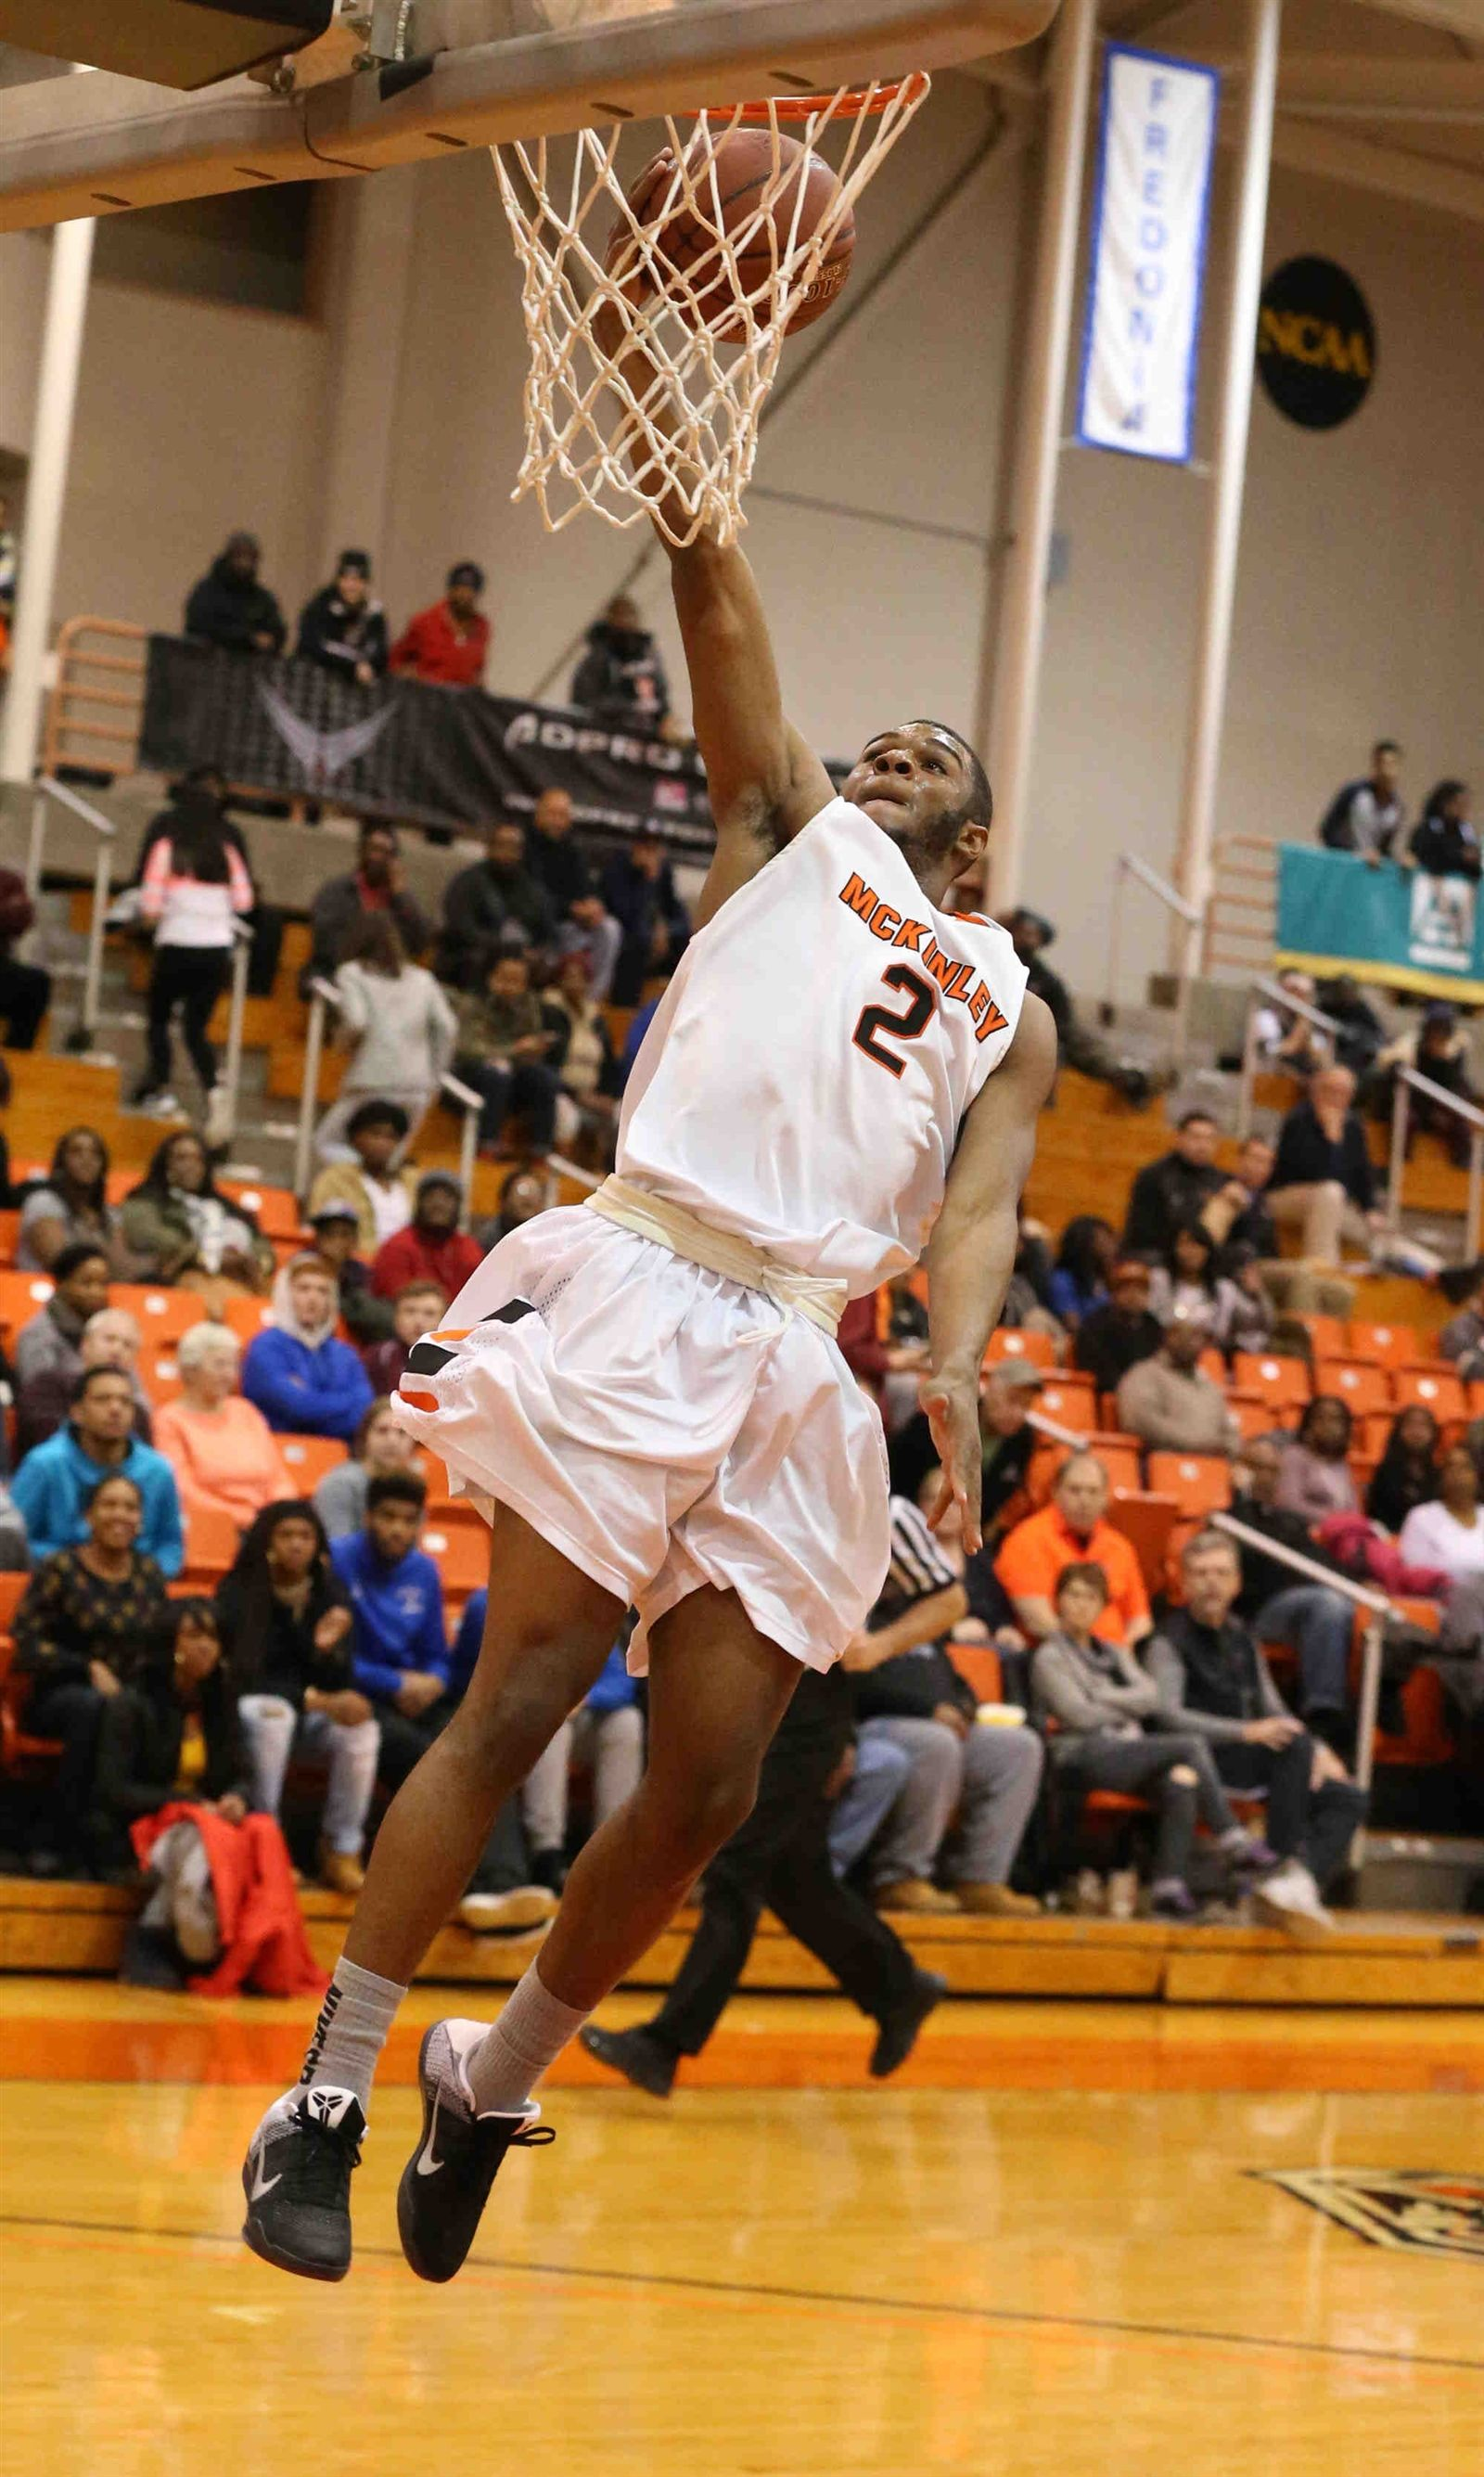 McKinley's Shaquan Jones steals the ball from South Park's Tyree Brown in the first half during the in the A-1 semifinal at Buffalo States Sports Arena in Buffalo on Wednesday, Feb. 24, 2016.